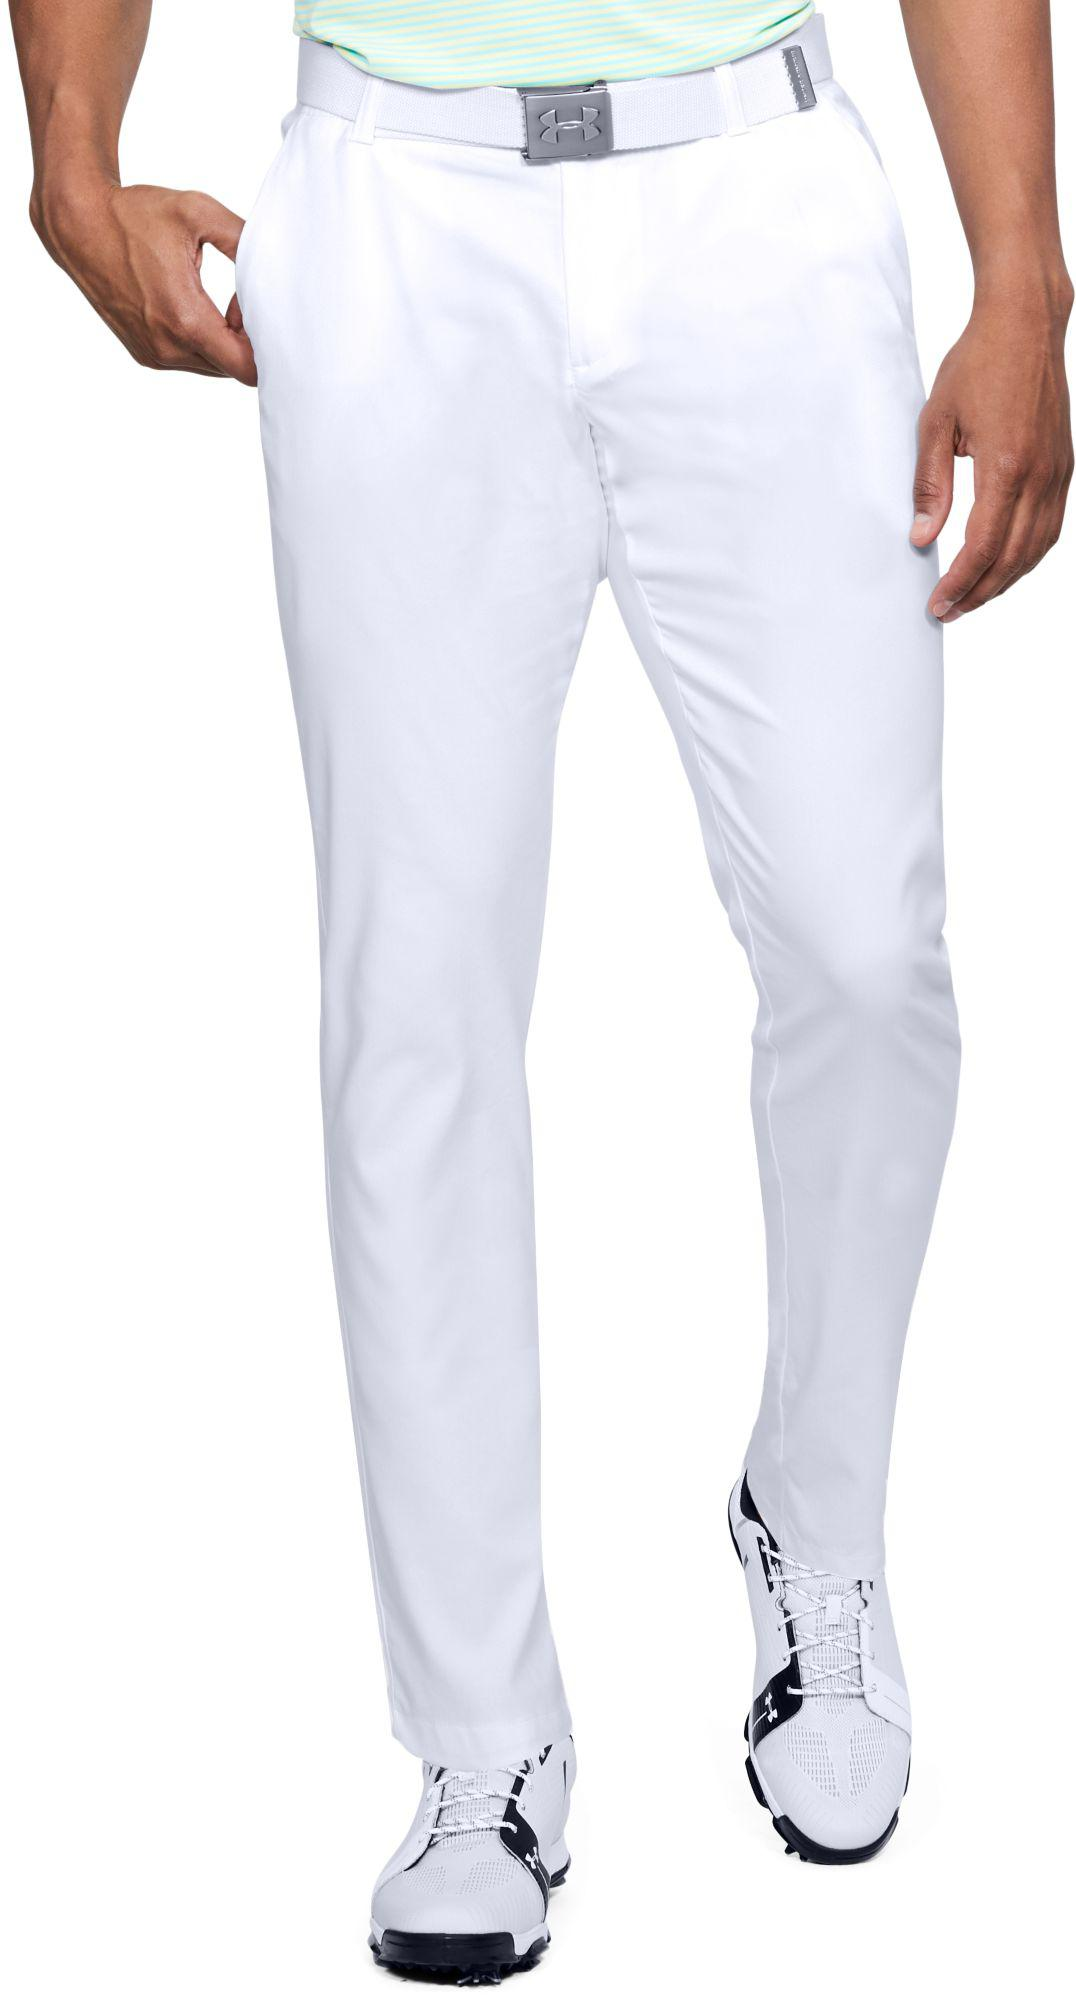 d2d12a9566d93 Under Armour Showdown Tapered Leg Golf Pants in White for Men - Lyst